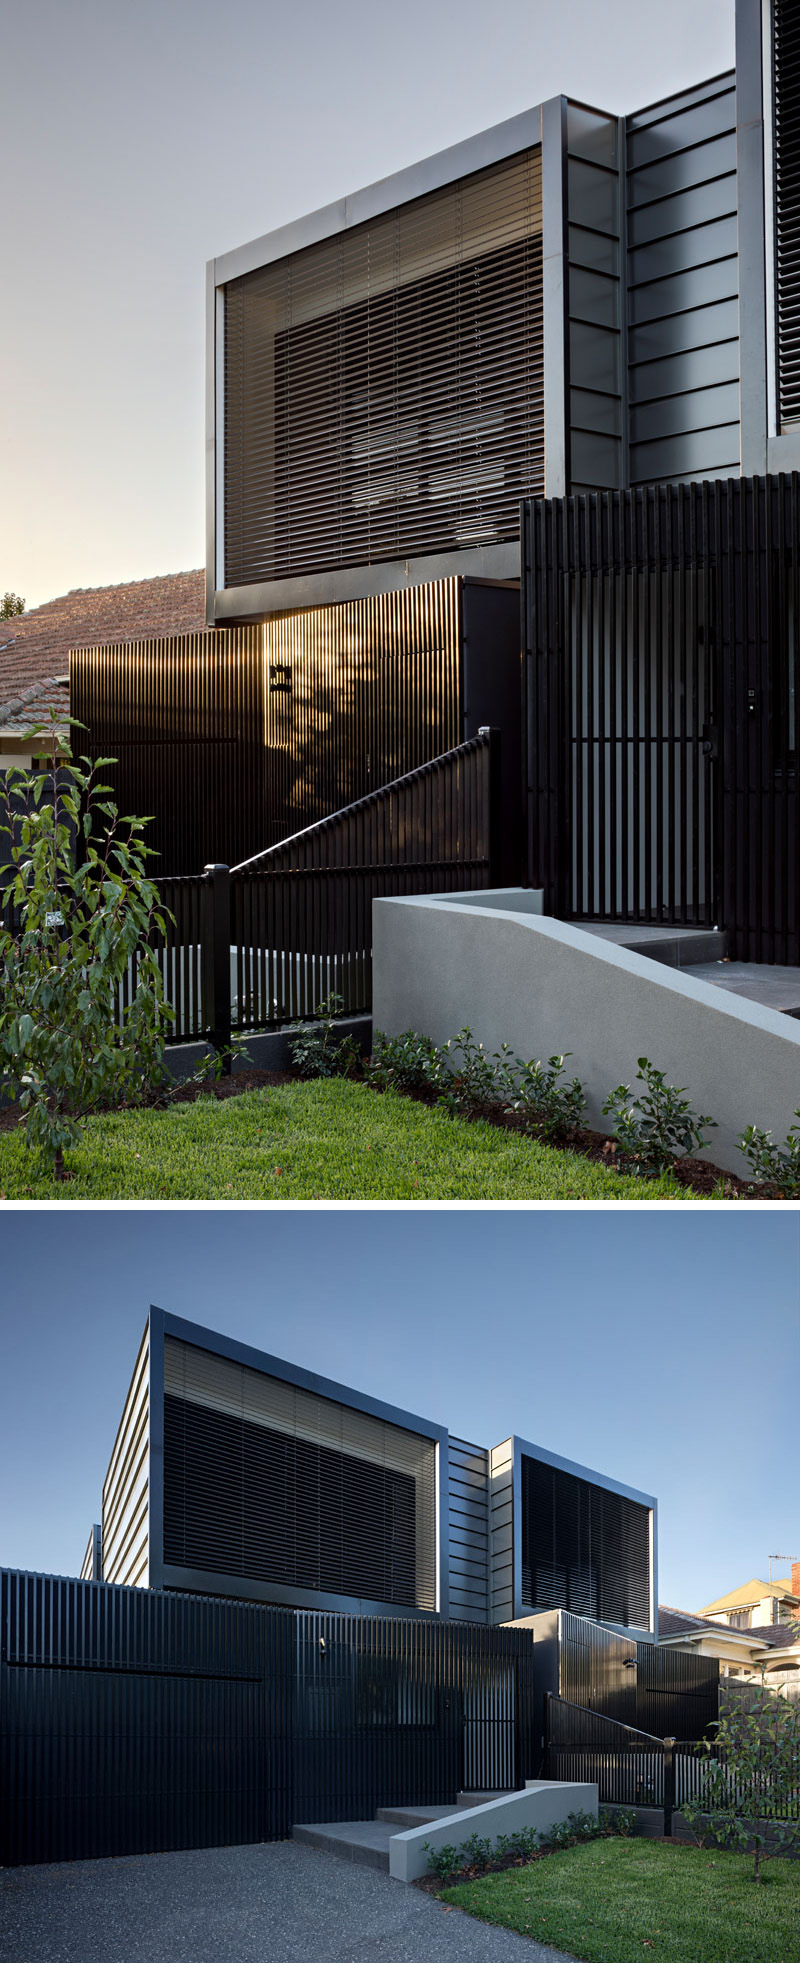 The exterior of the black modern townhouses have lightweight aluminium batten screening, and metal cladding.